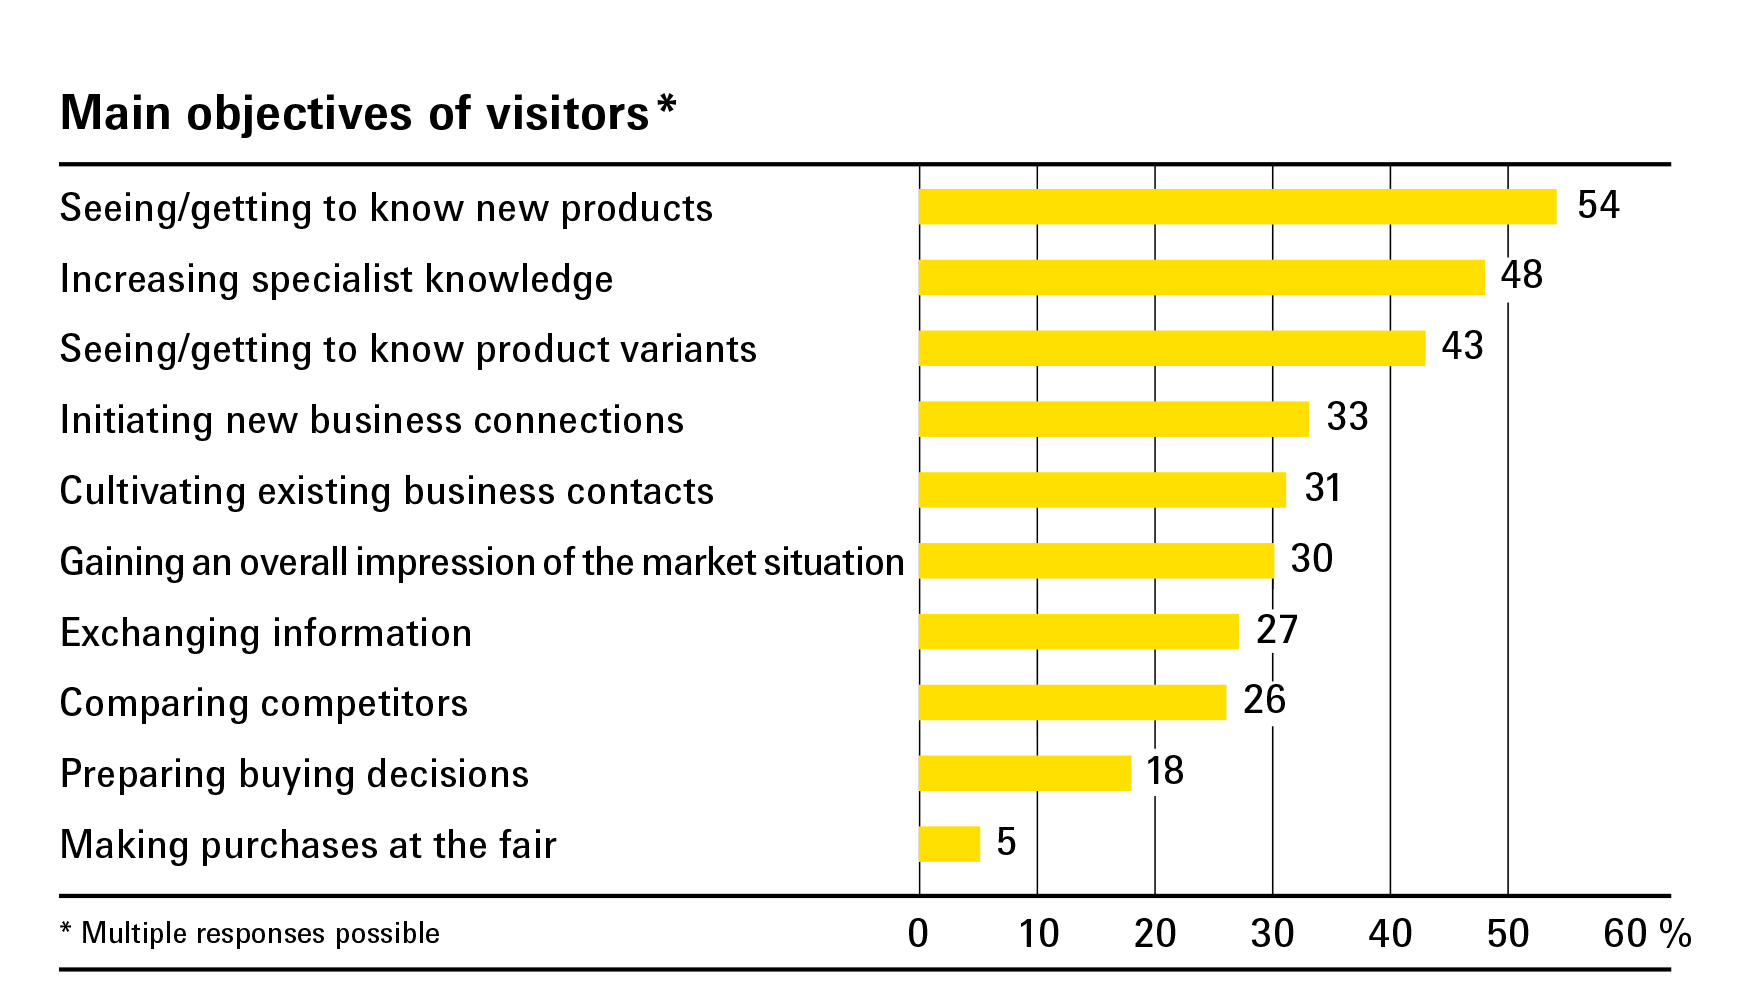 Main objectives of visitors